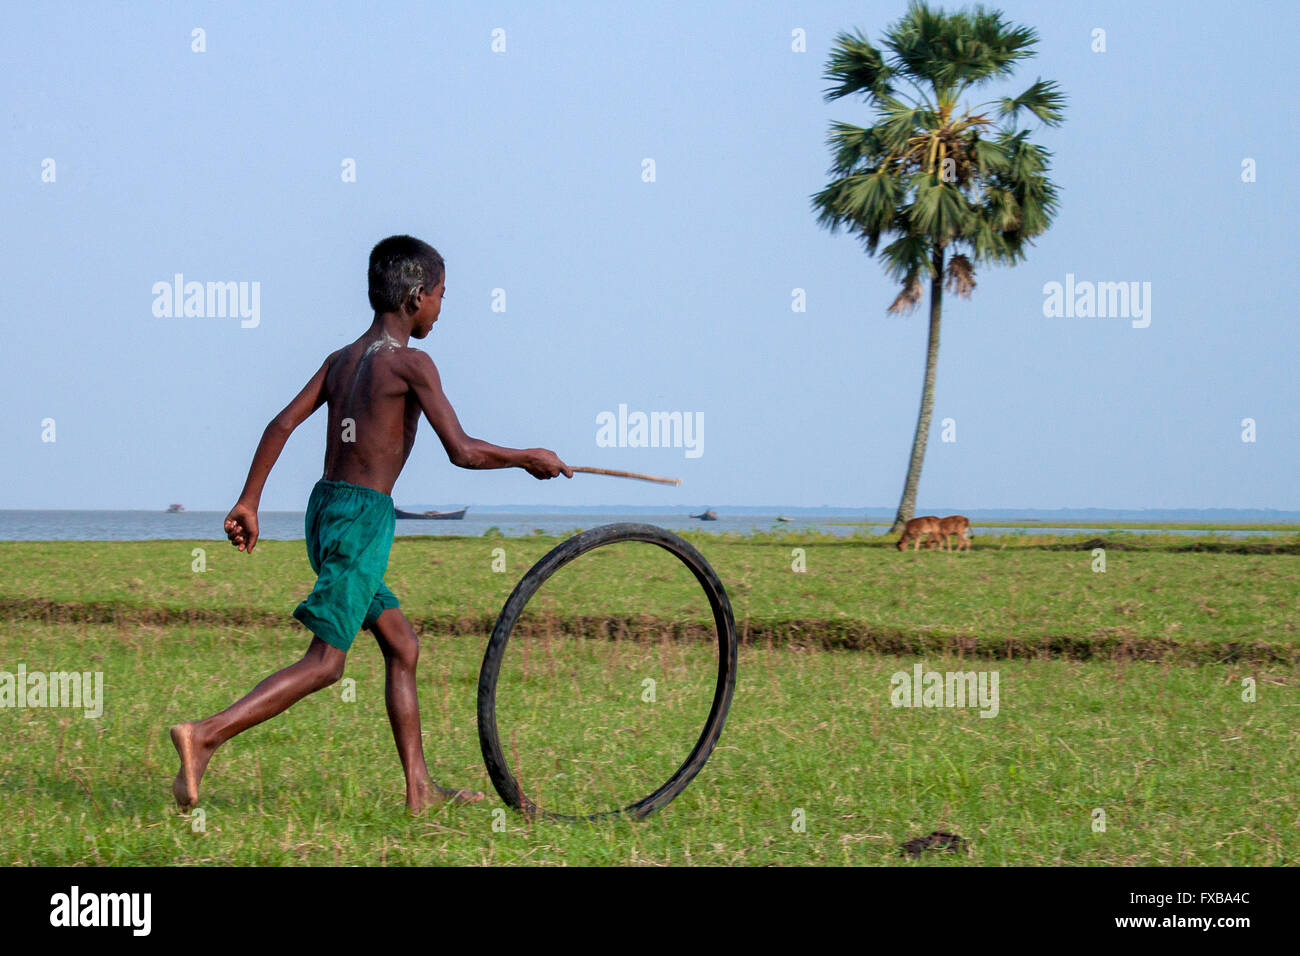 A boy playing with bicycle tire in the Vola District, Barishal, Bangladesh, Asia © Jahangir Alam Onuchcha/Alamy - Stock Image